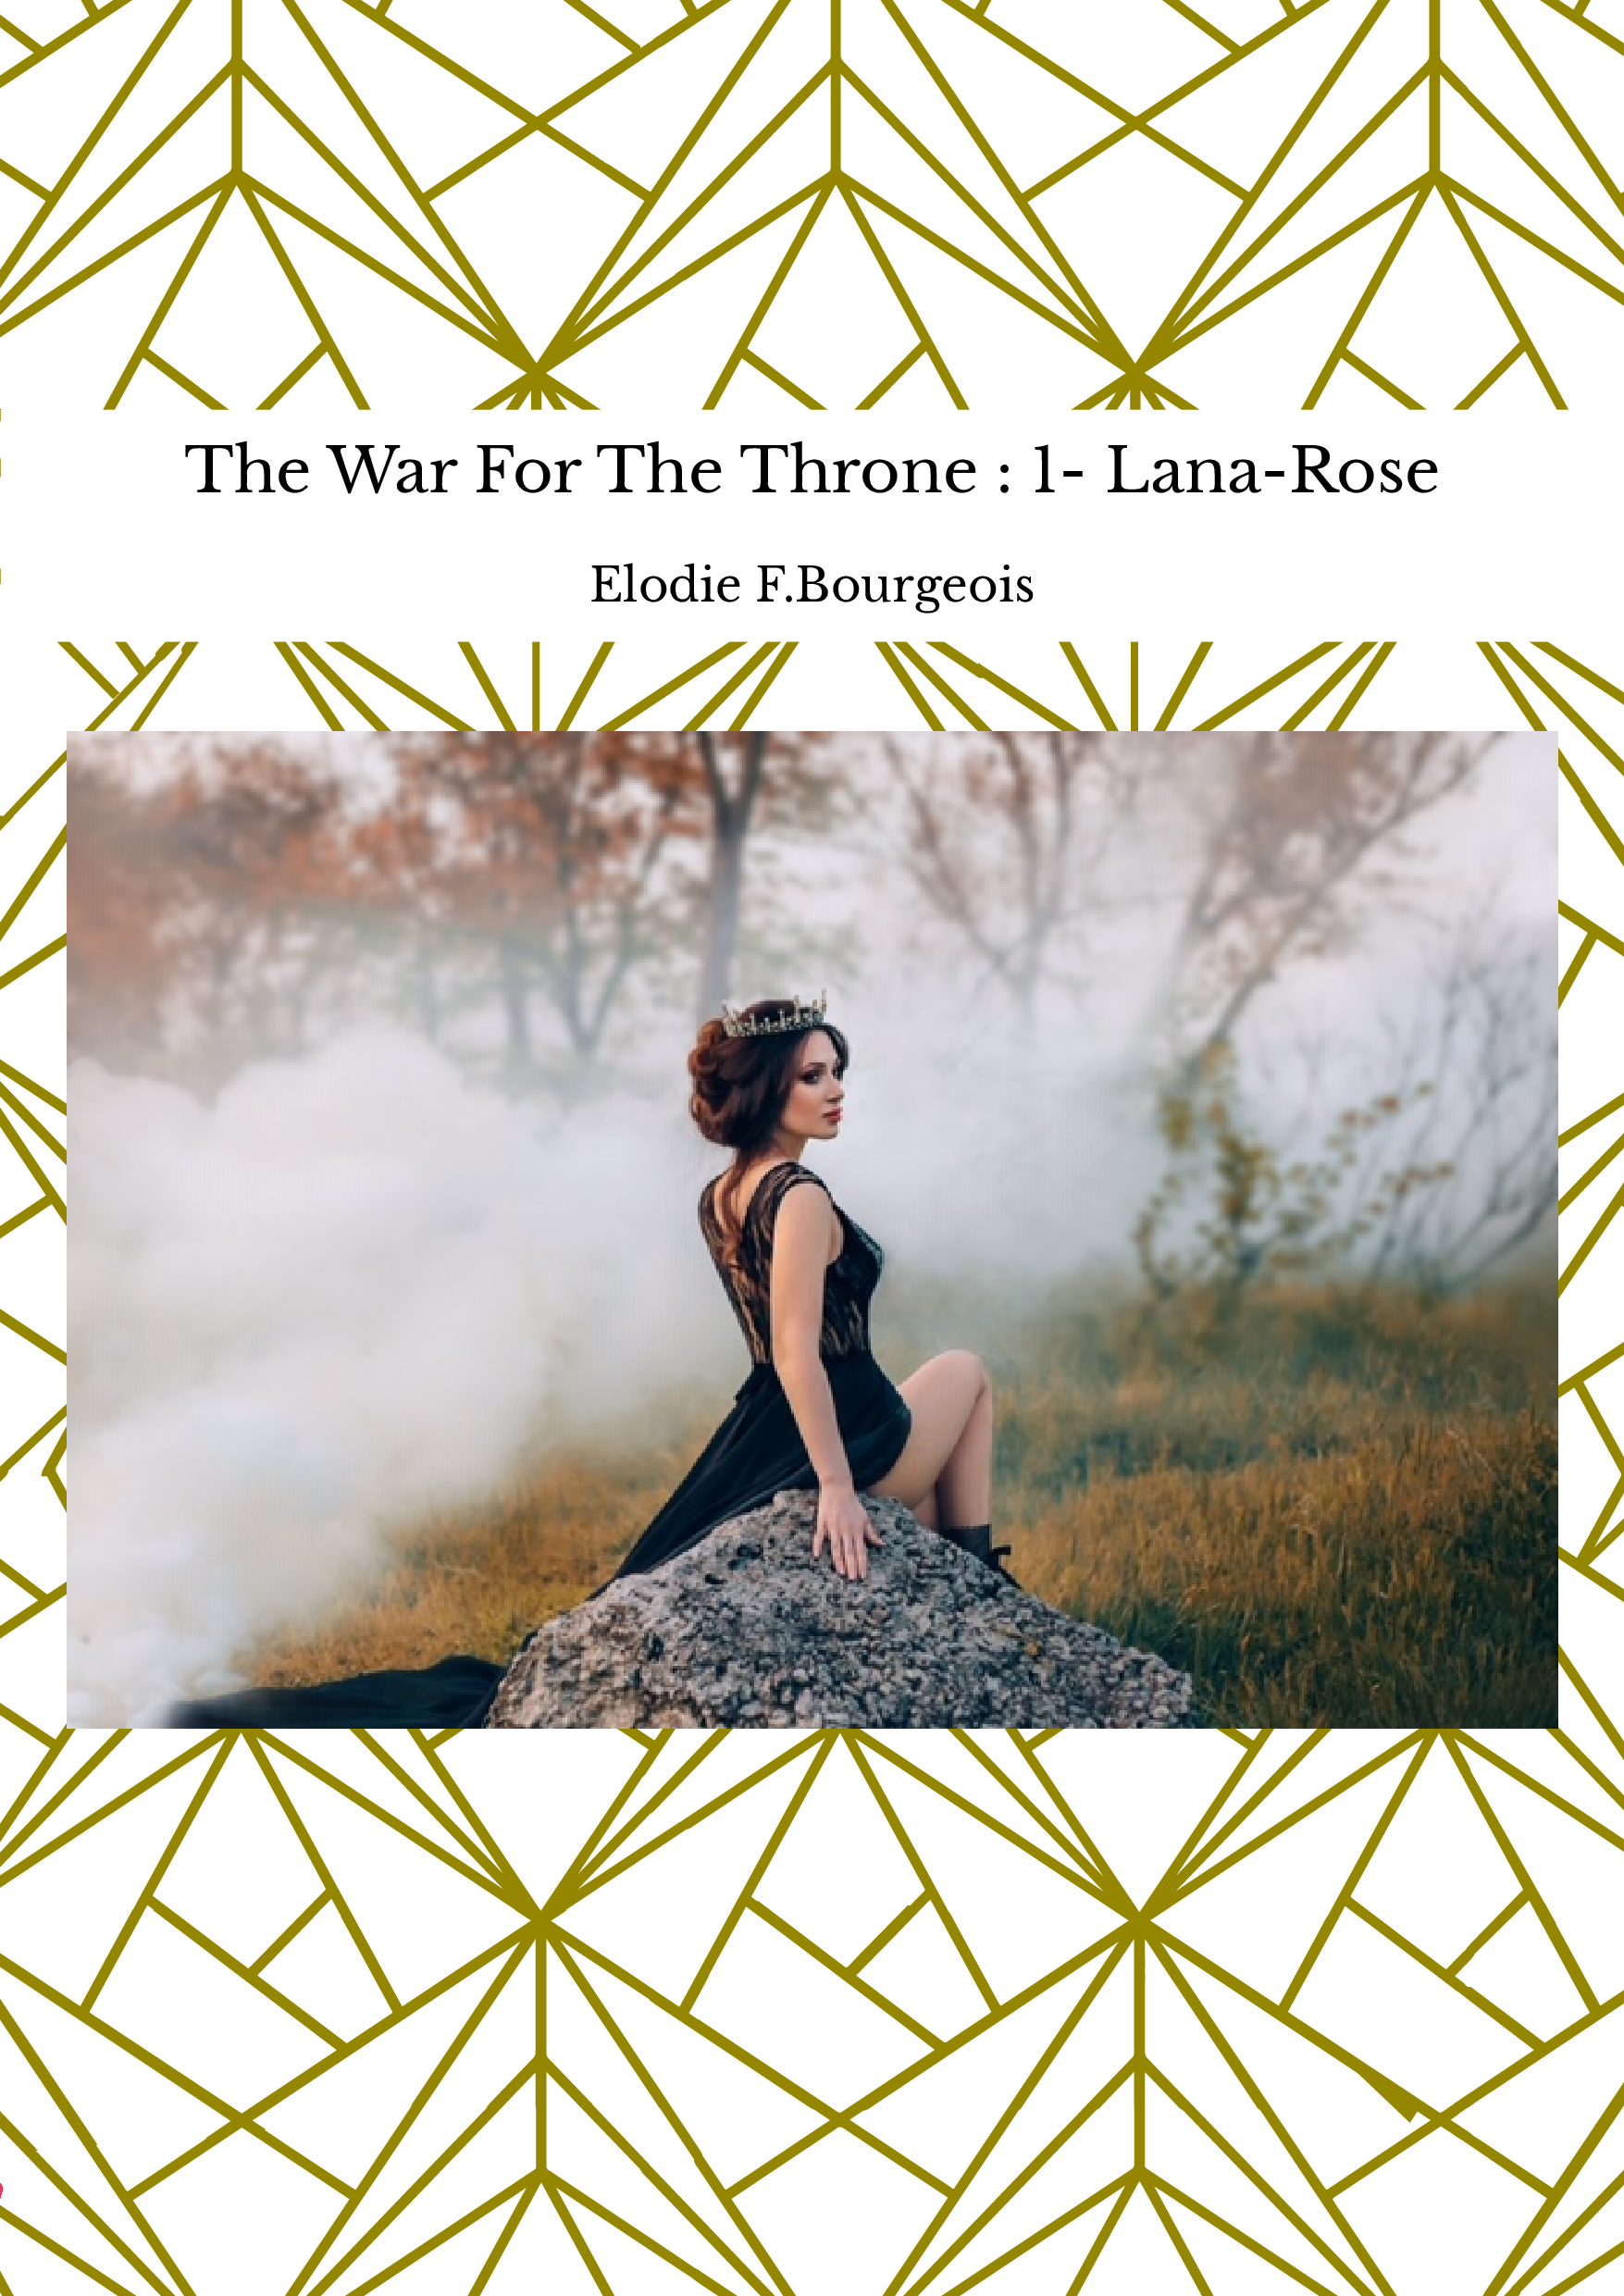 The War For The Throne : 1- Lana-Rose